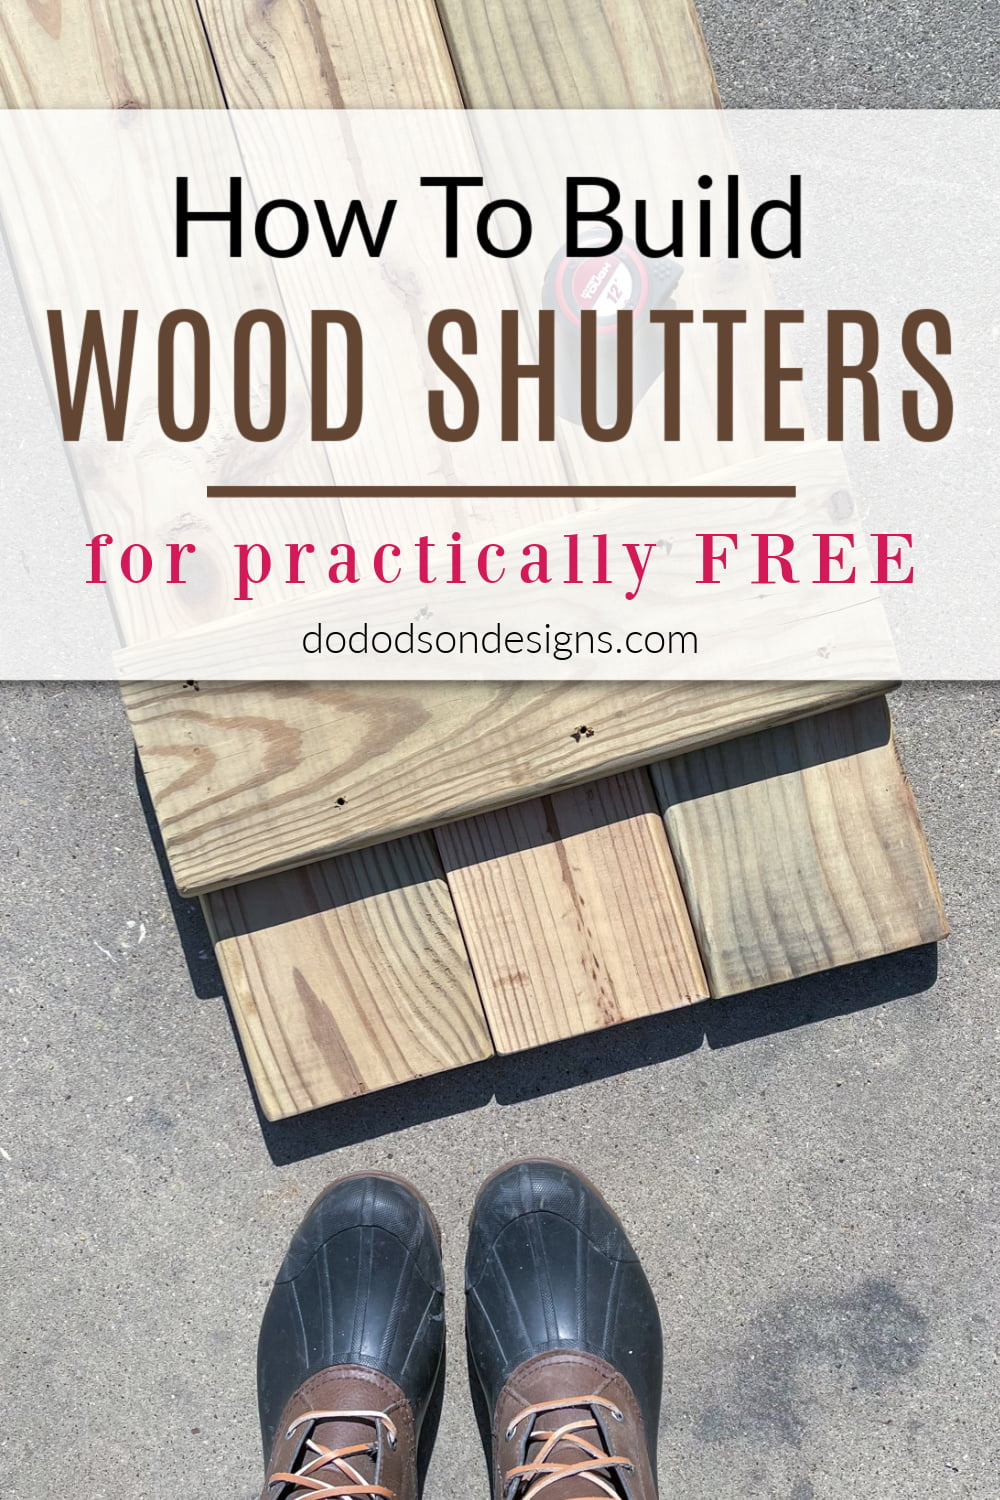 How To DIY Wood Shutters For Practically Free